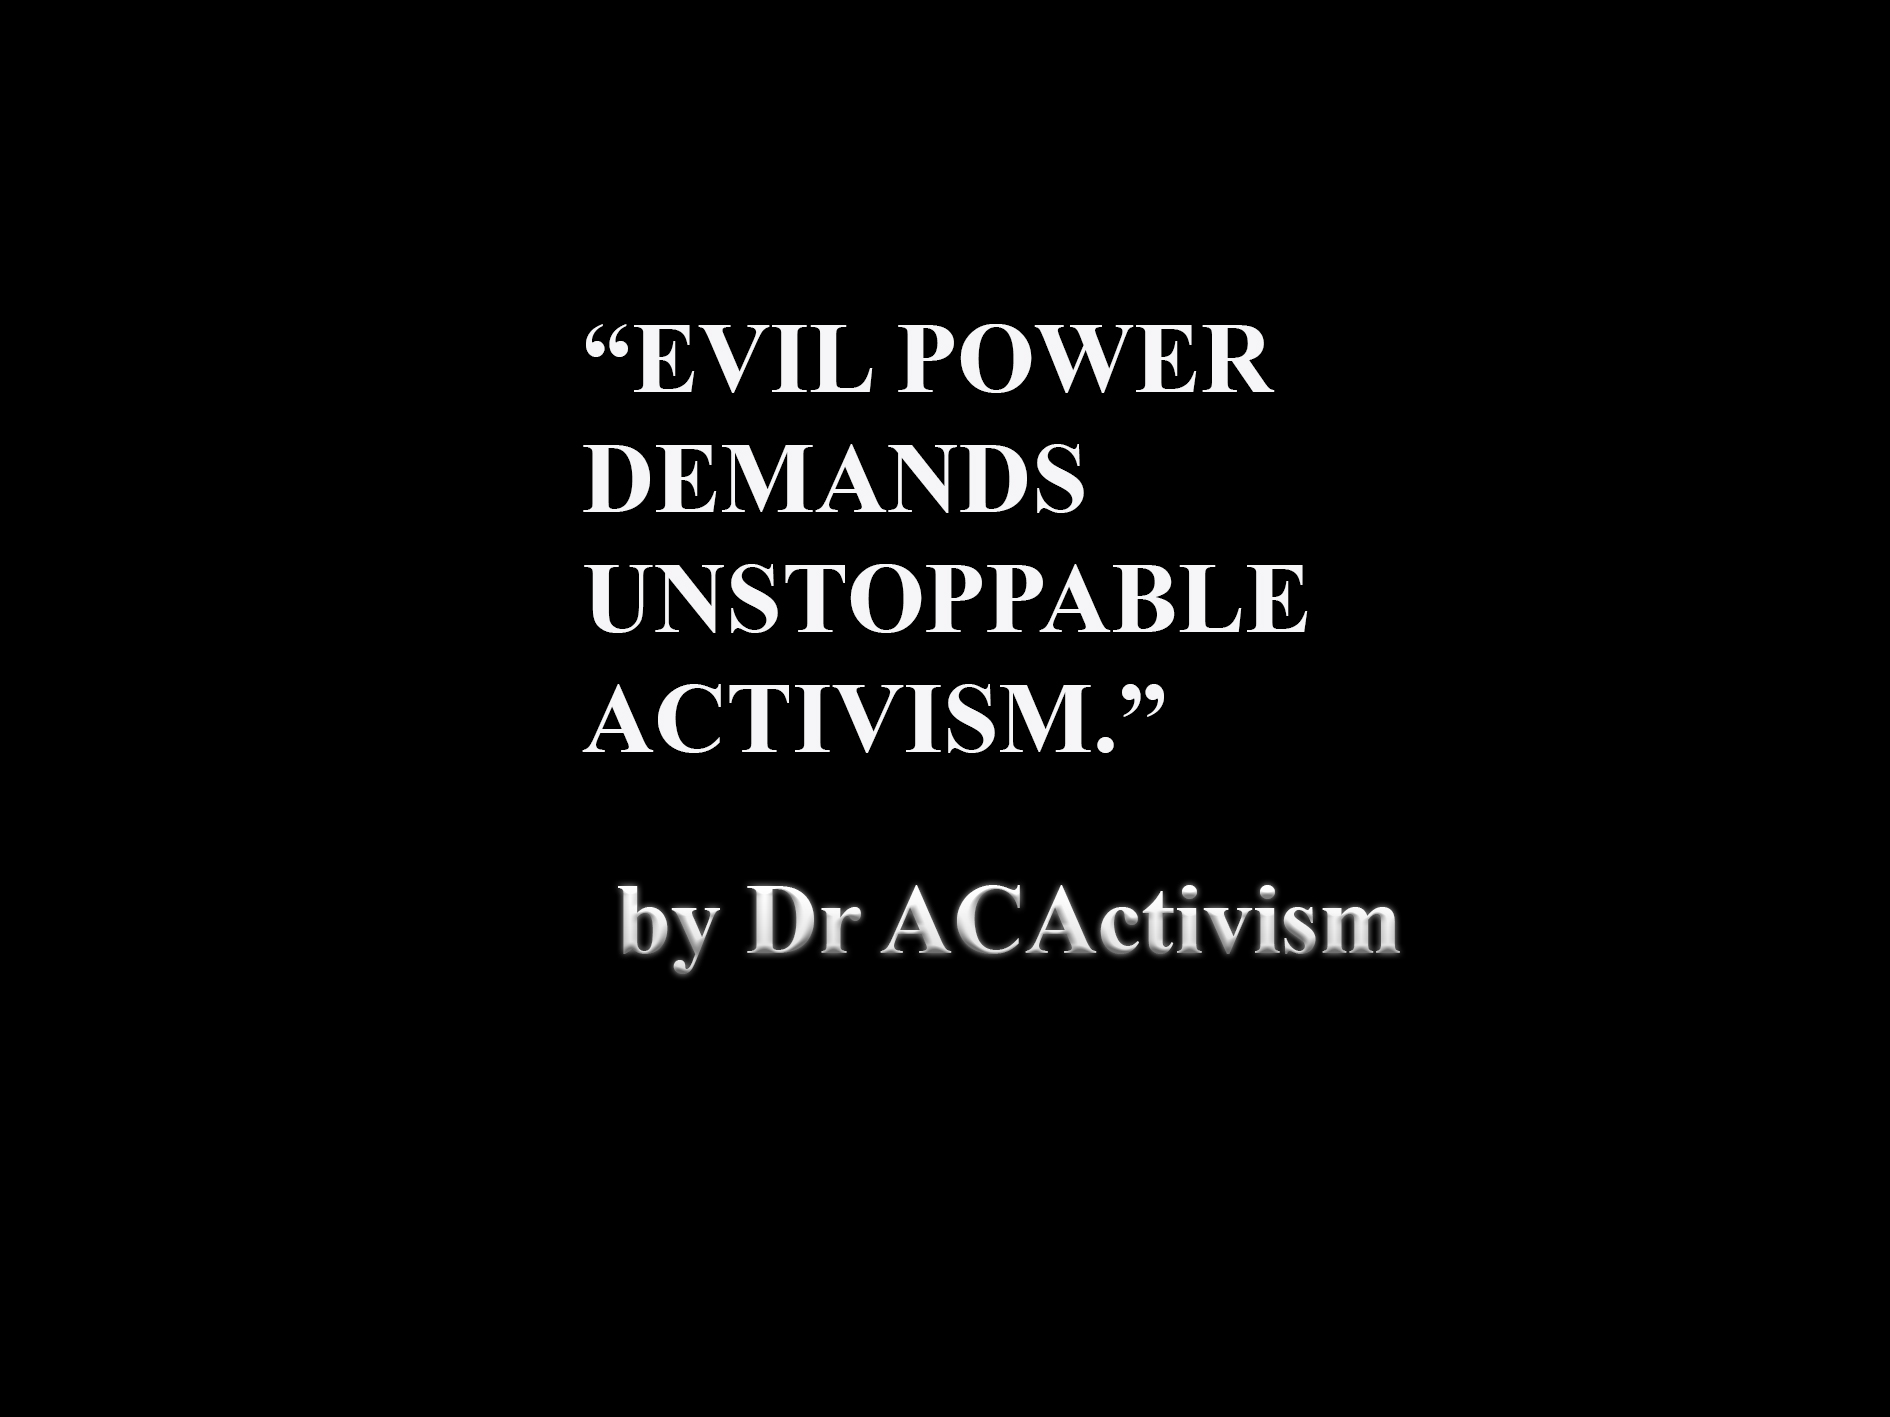 The Future Speaks Clearly of ACTIVISM. Hyper Capitalism has created MONOPOLISTIC MONSTERS in all walks of Life. So future GENERATIONS have the choice to die fighting for SOCIAL JUSTICE or die like Oppressed slaves plunged into depression and abuse of all forms. That is suicide.